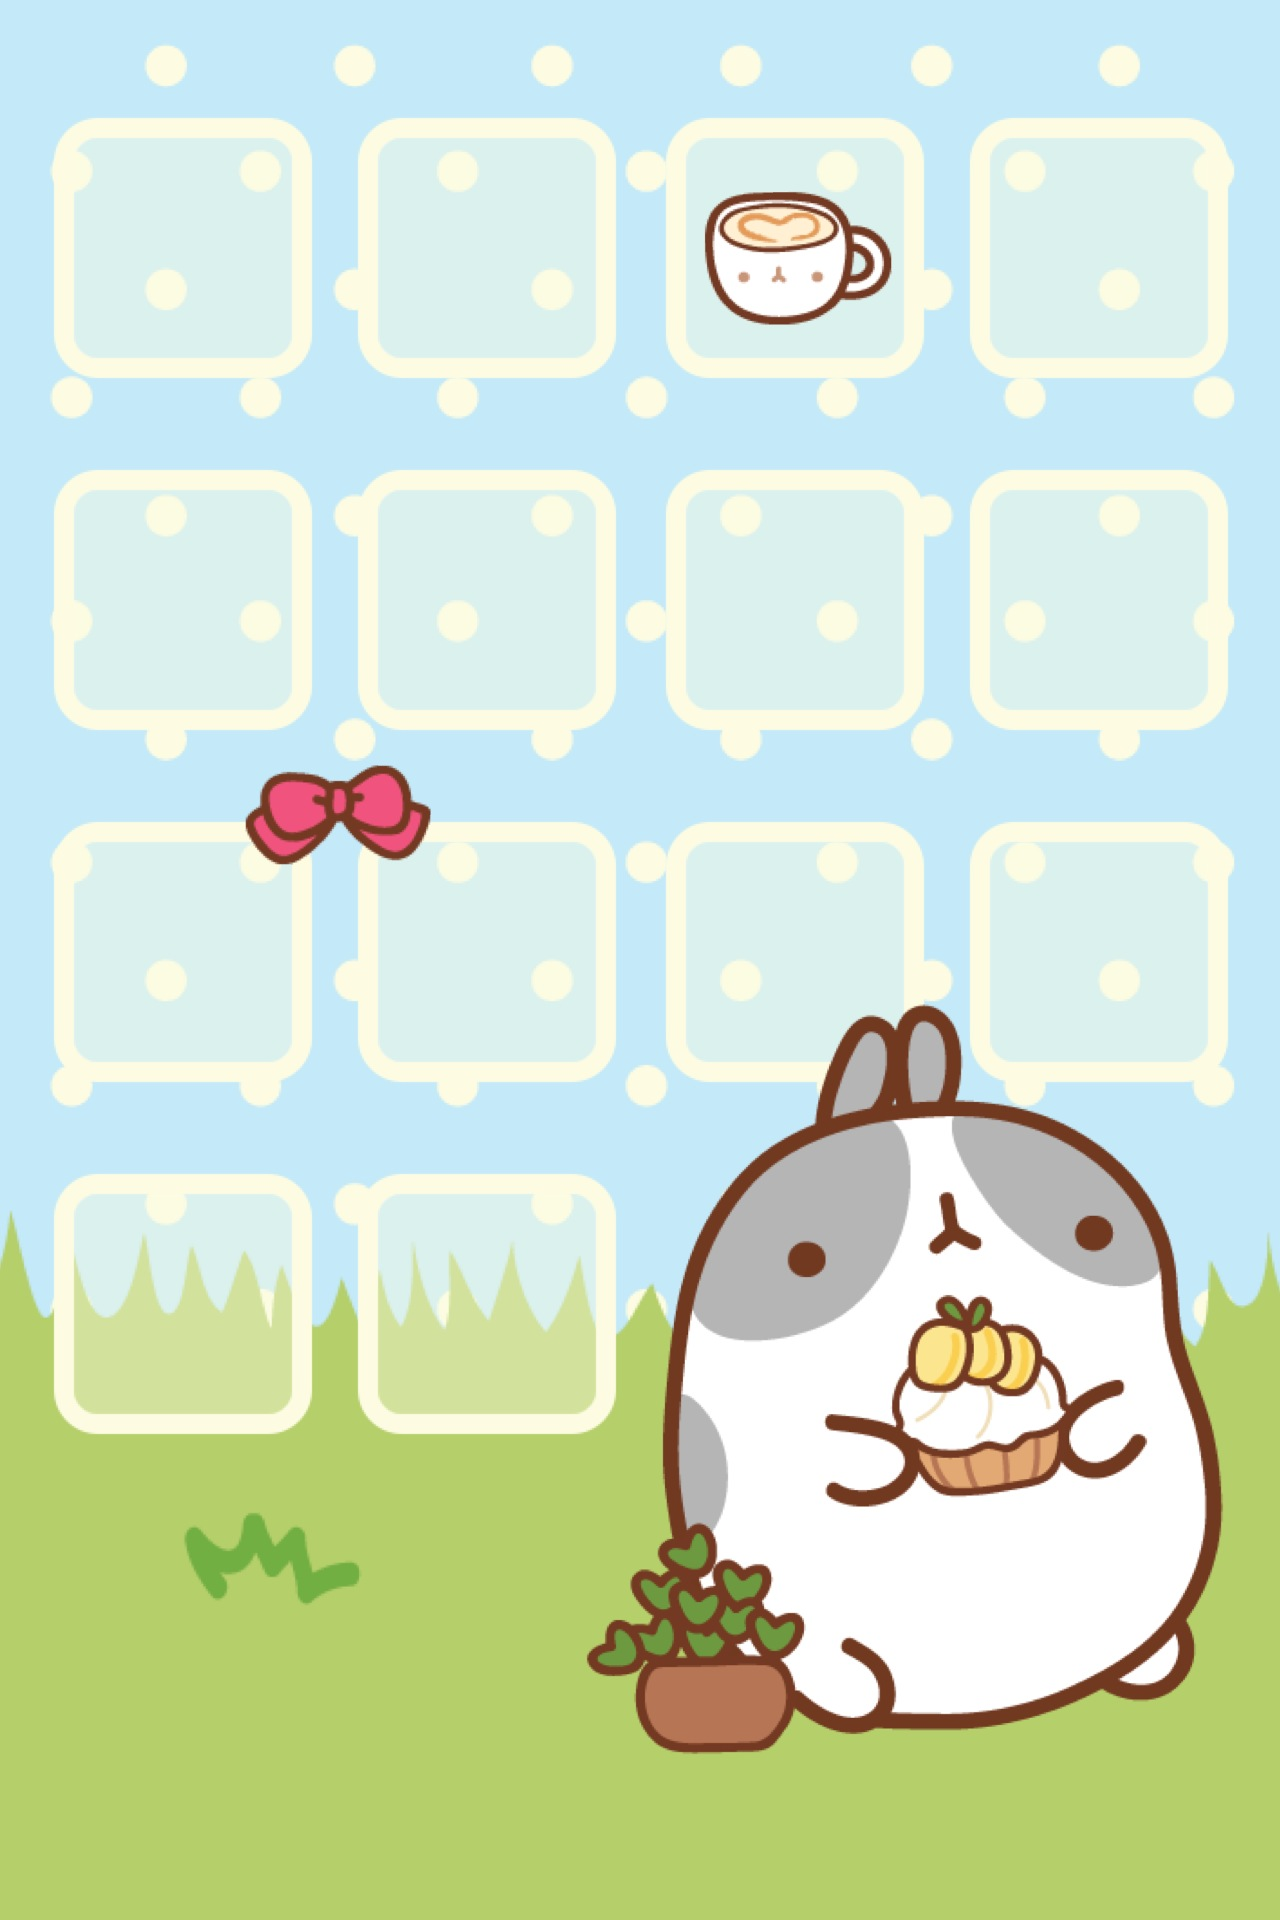 Cute Wallpapers for Phones Animated